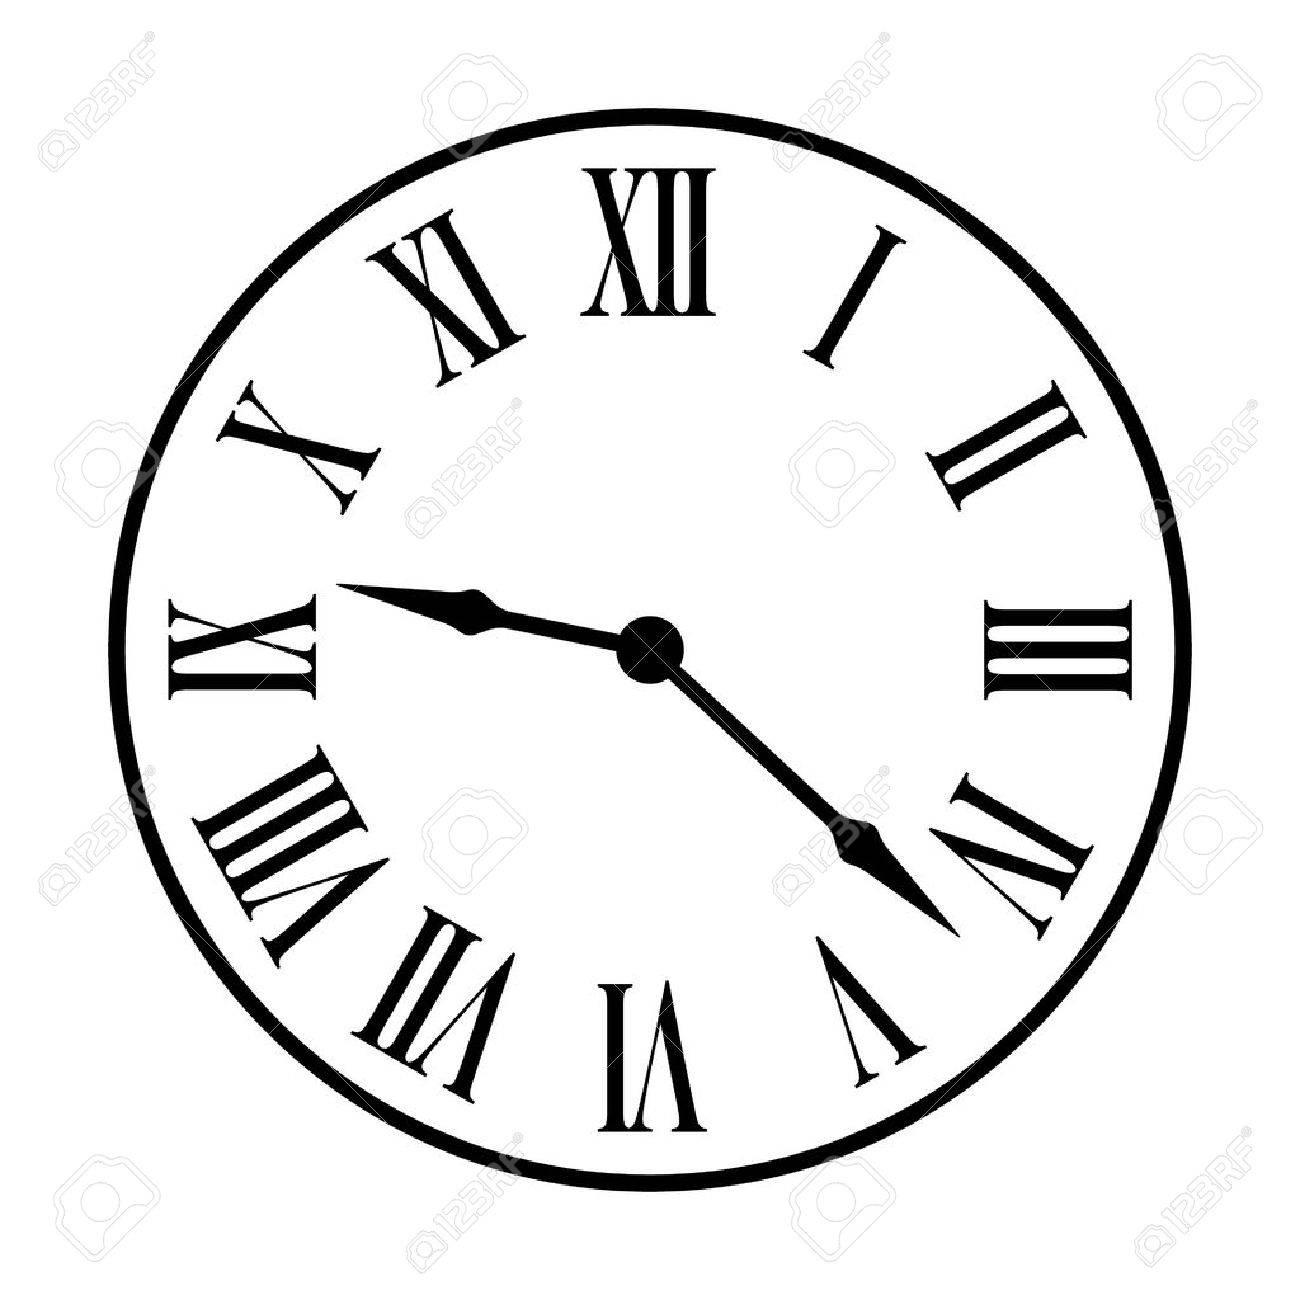 Clock Face Images Free Download On Clipartmag